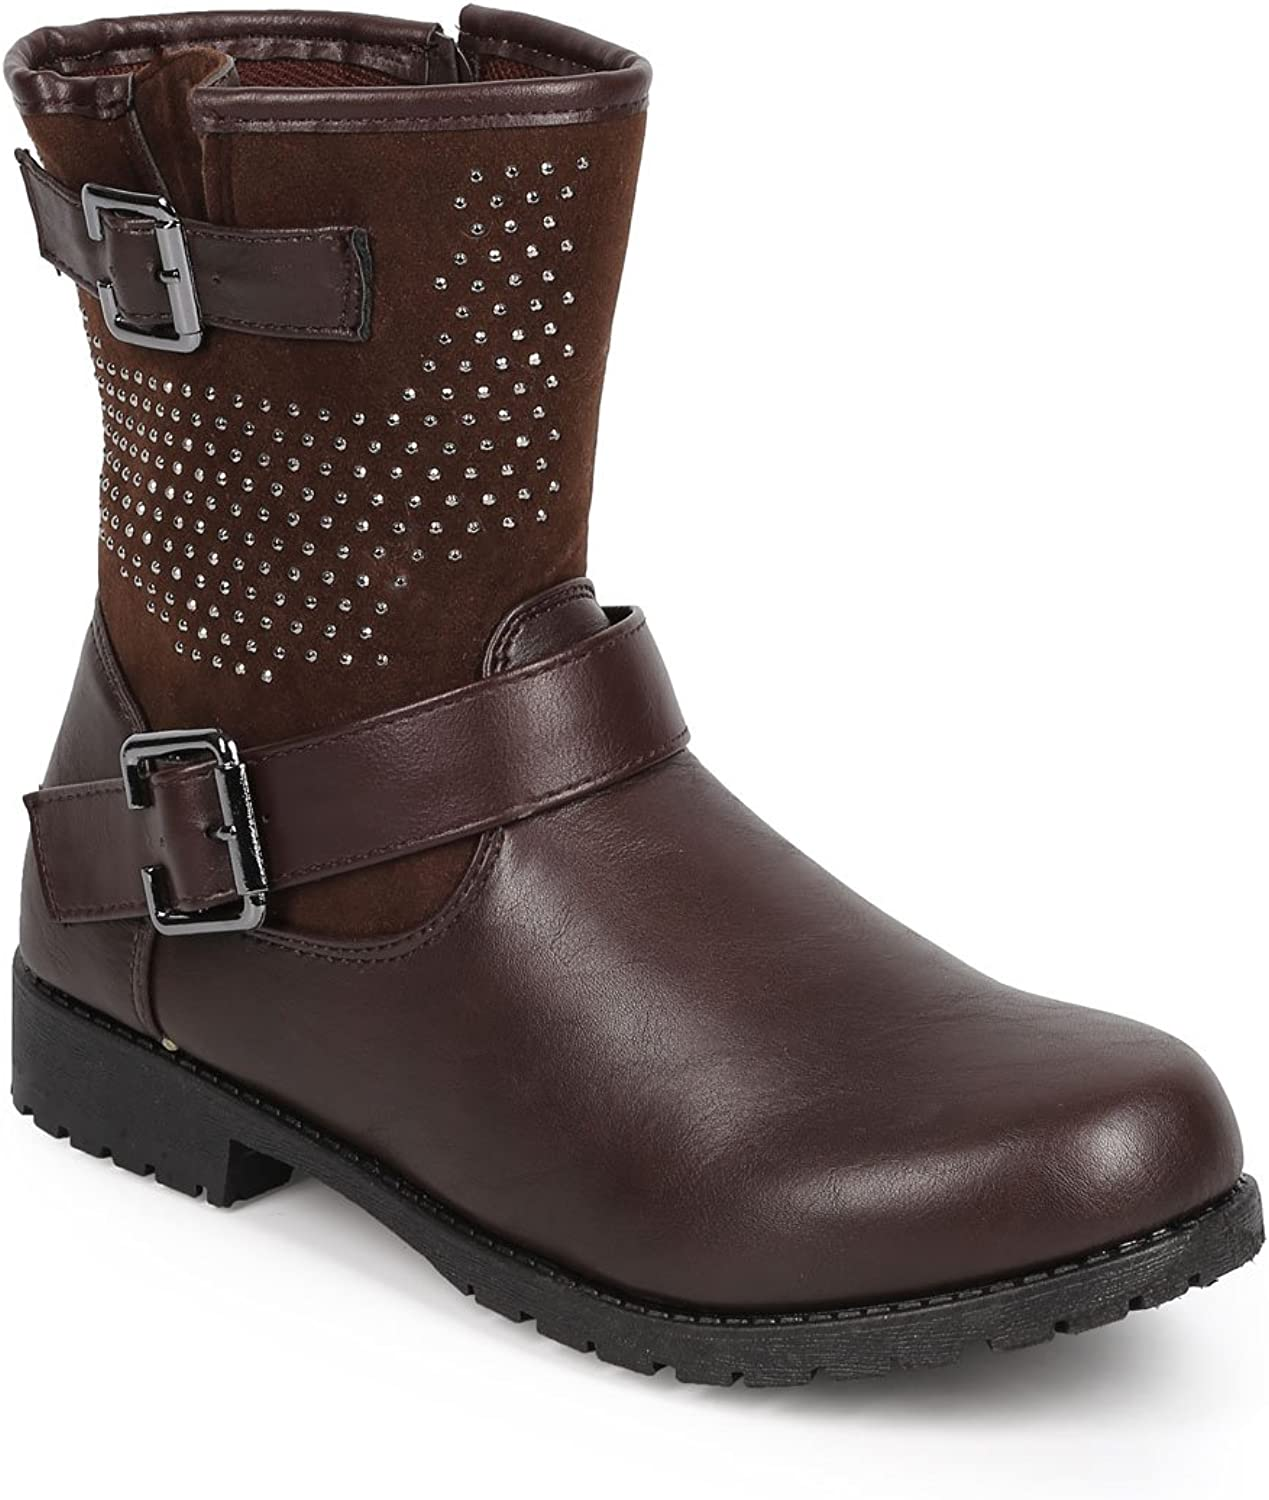 Bumper DB24 Women Leatherette Round Toe Strappy Stud Motorcycle Boot - Brown